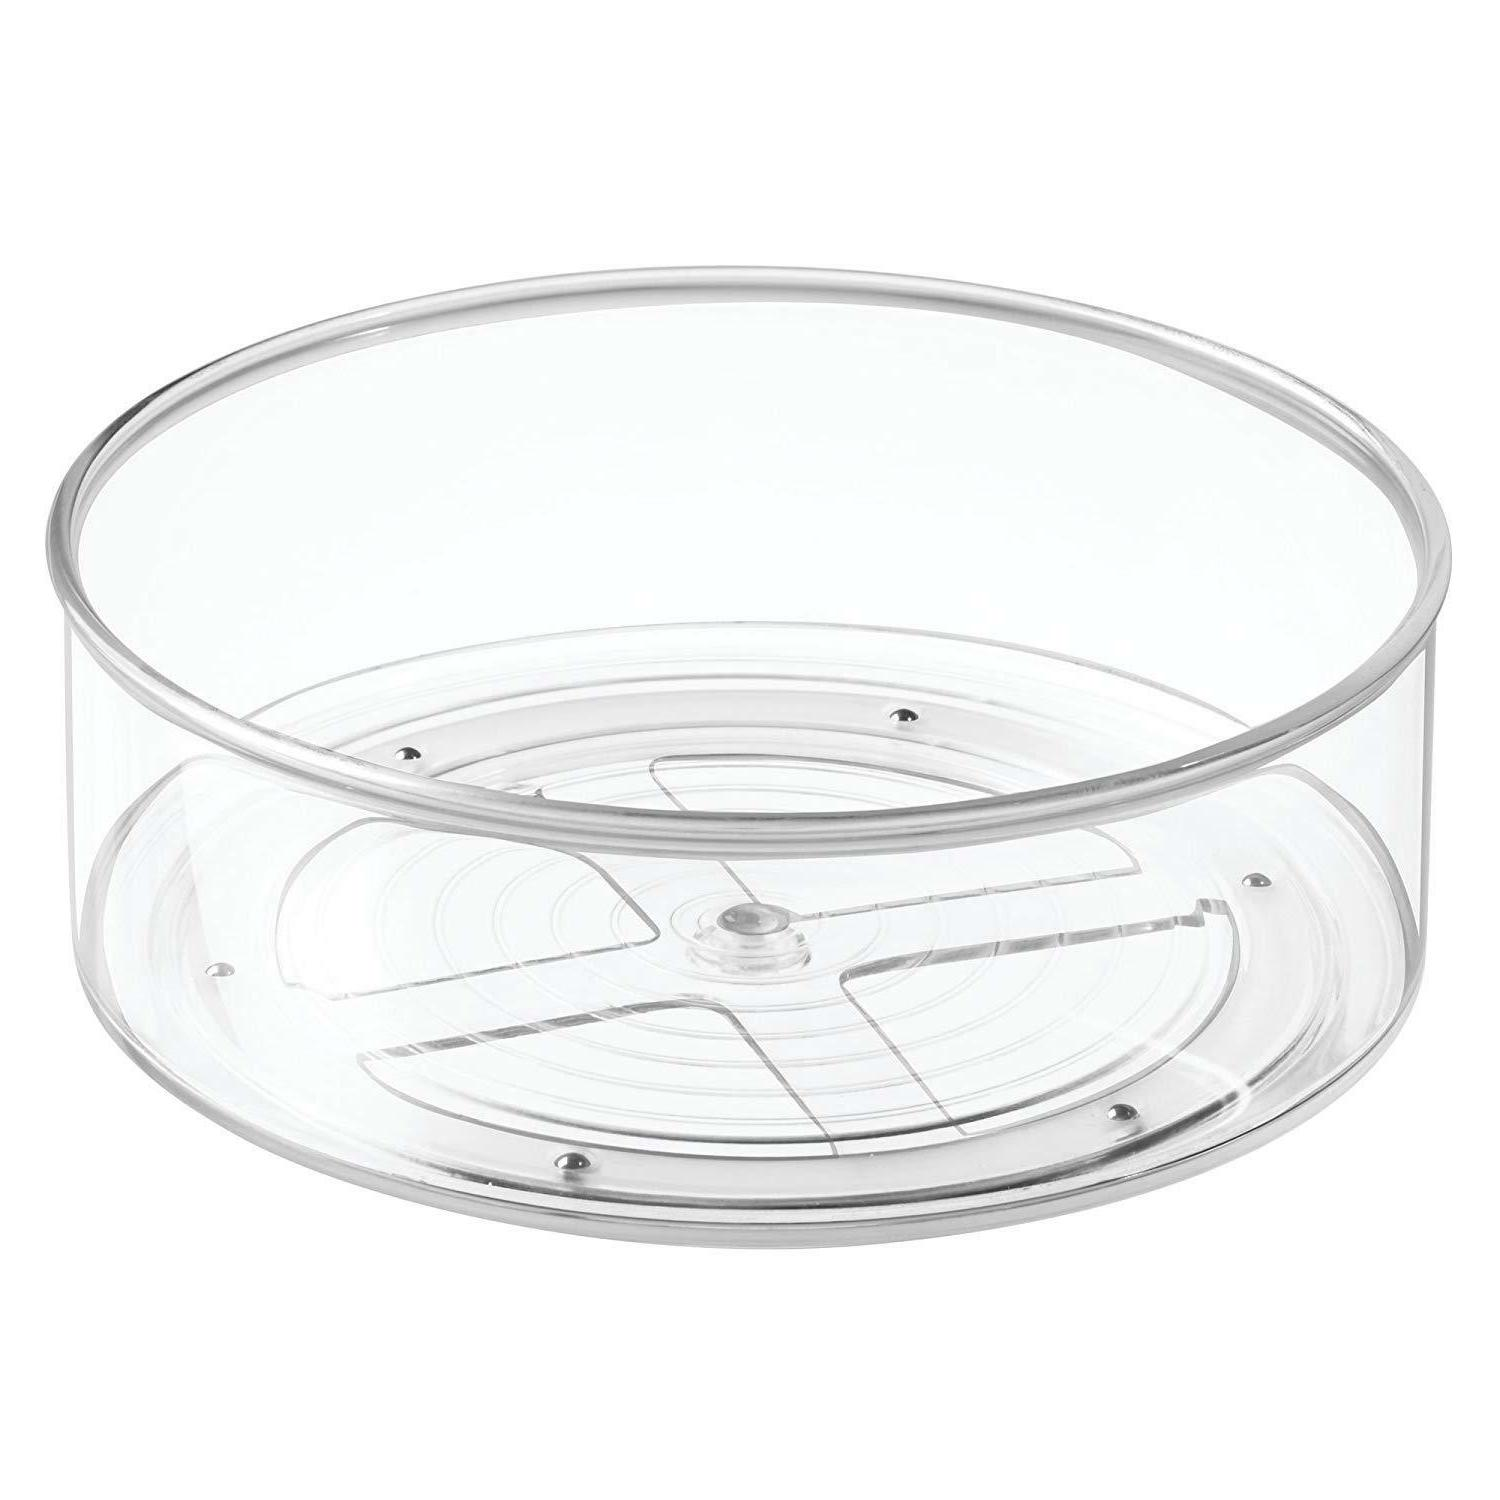 Rubbermaid 711717427300 Easy Find Lids Square 3-Cup Food Sto